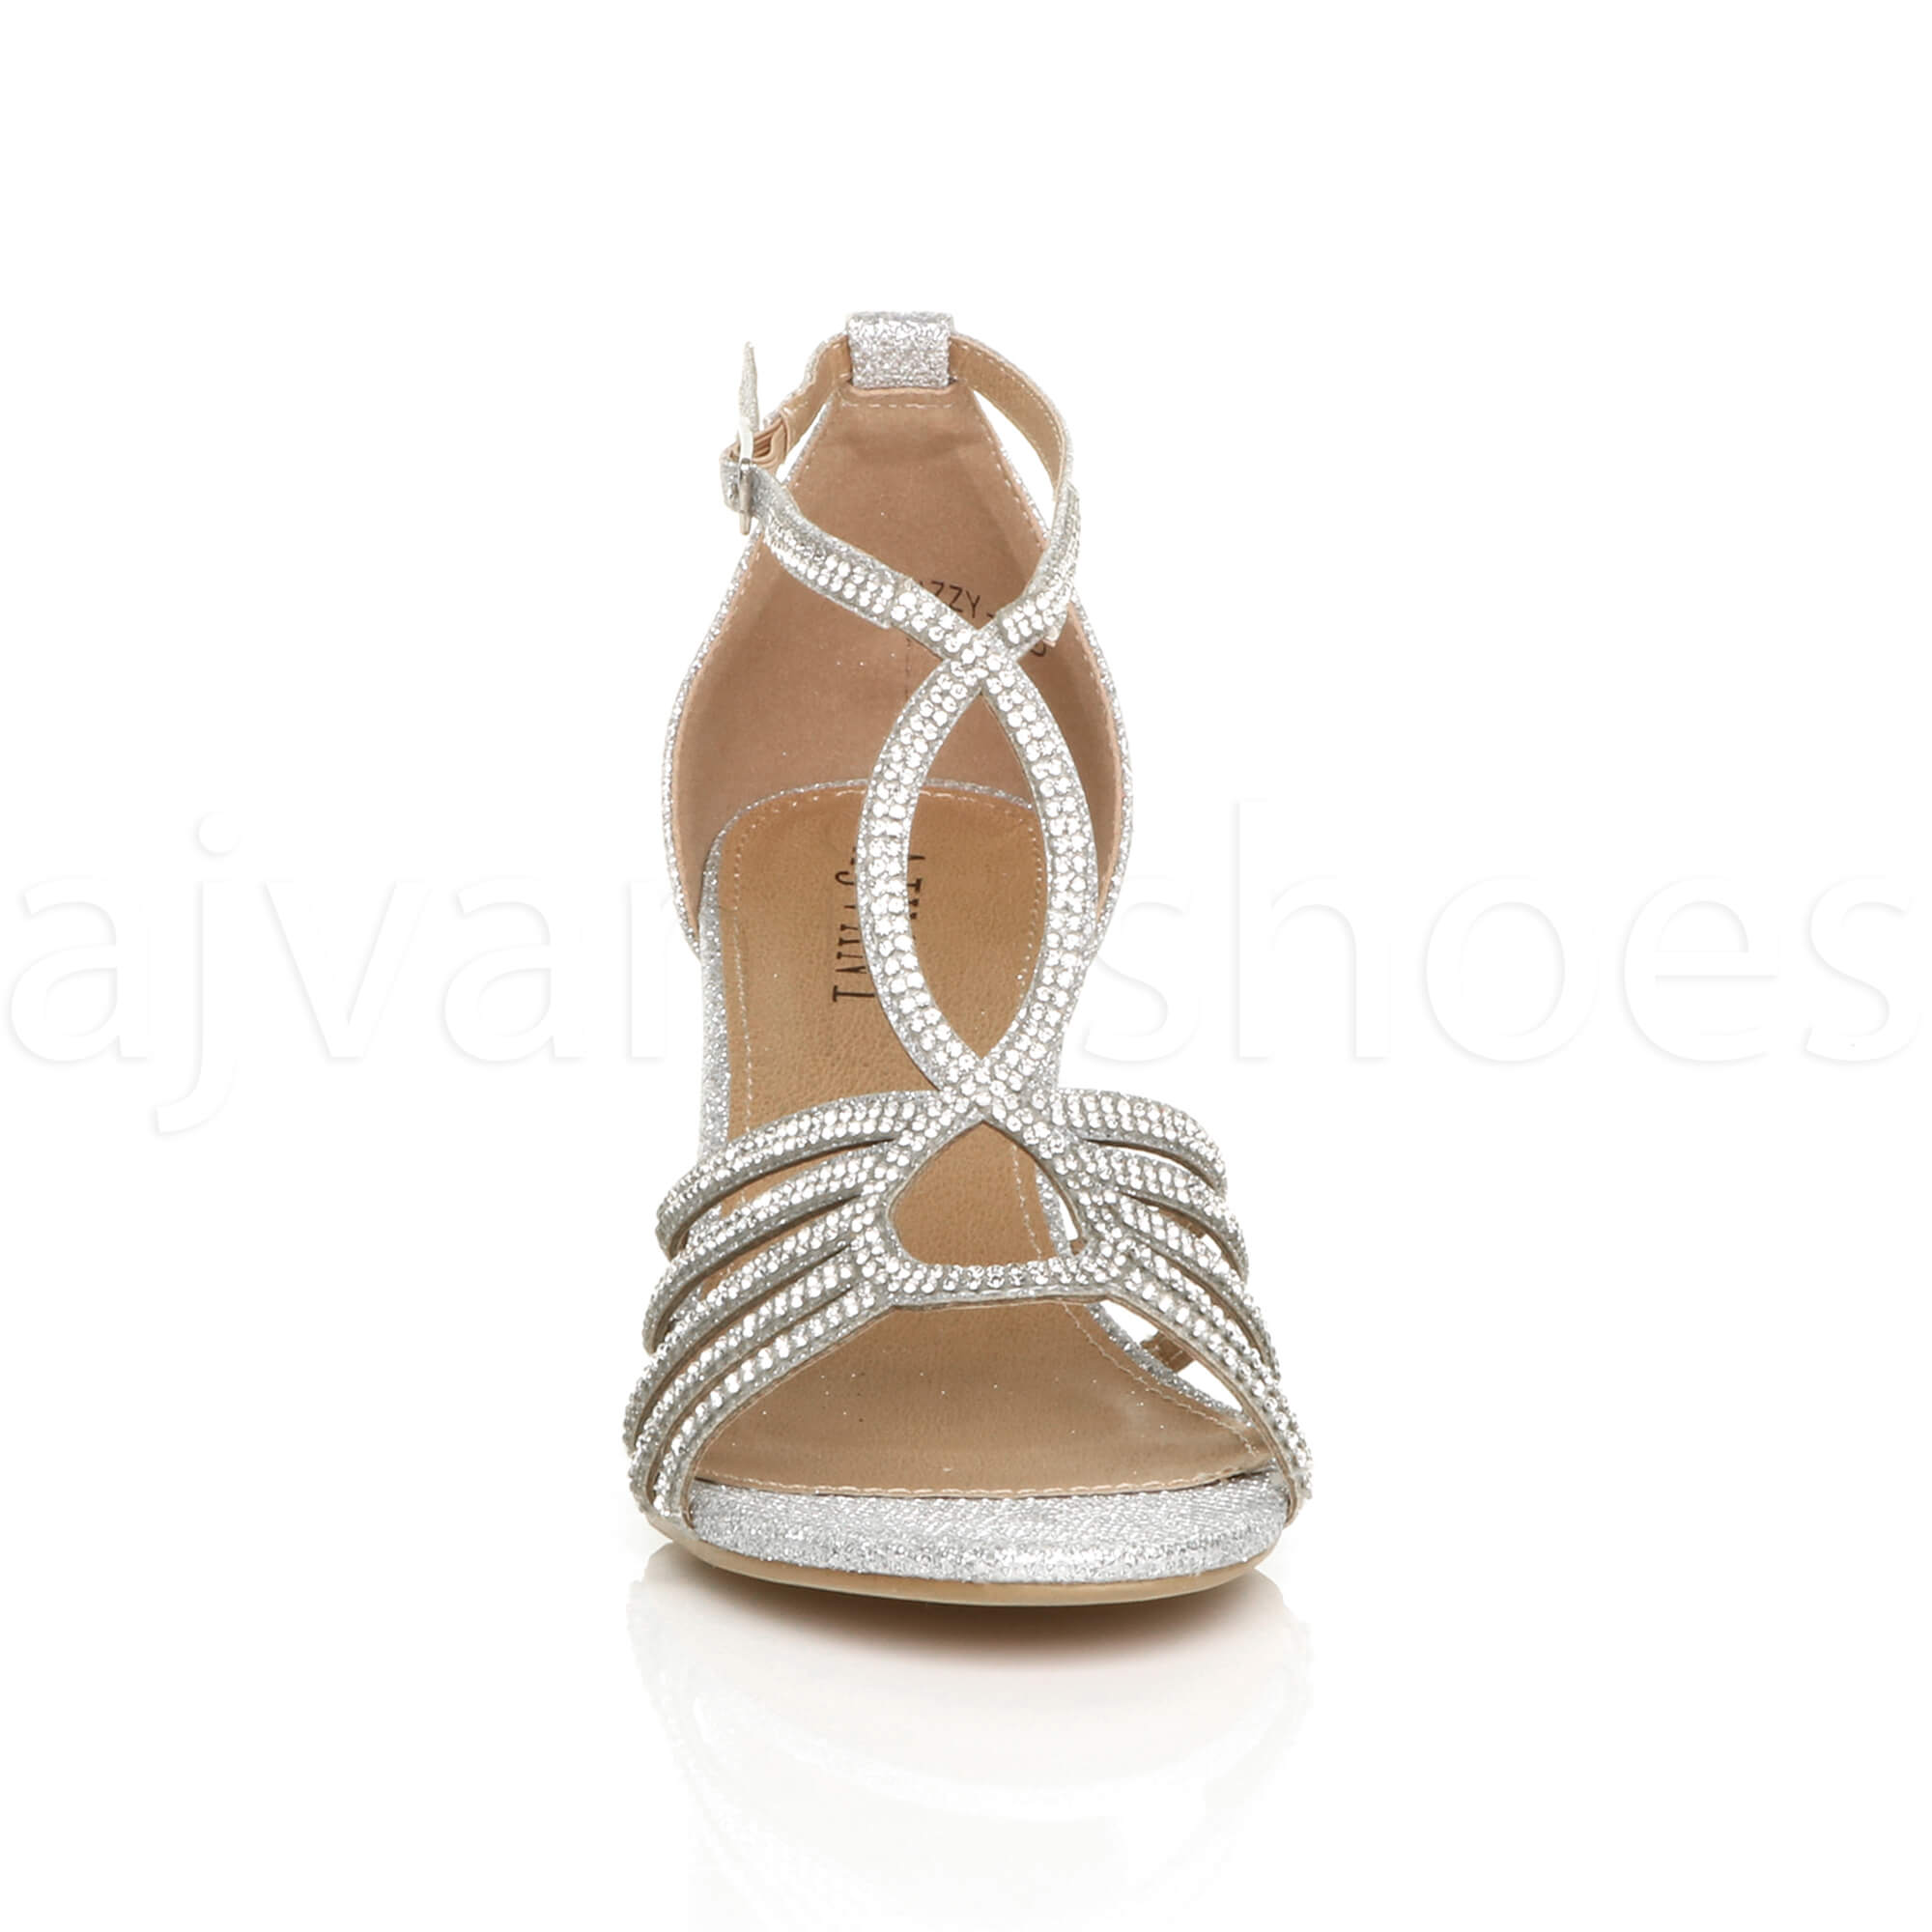 WOMENS-LADIES-MID-HEEL-STRAPPY-DIAMANTE-WEDDING-EVENING-T-BAR-SANDALS-SHOES-SIZE thumbnail 24